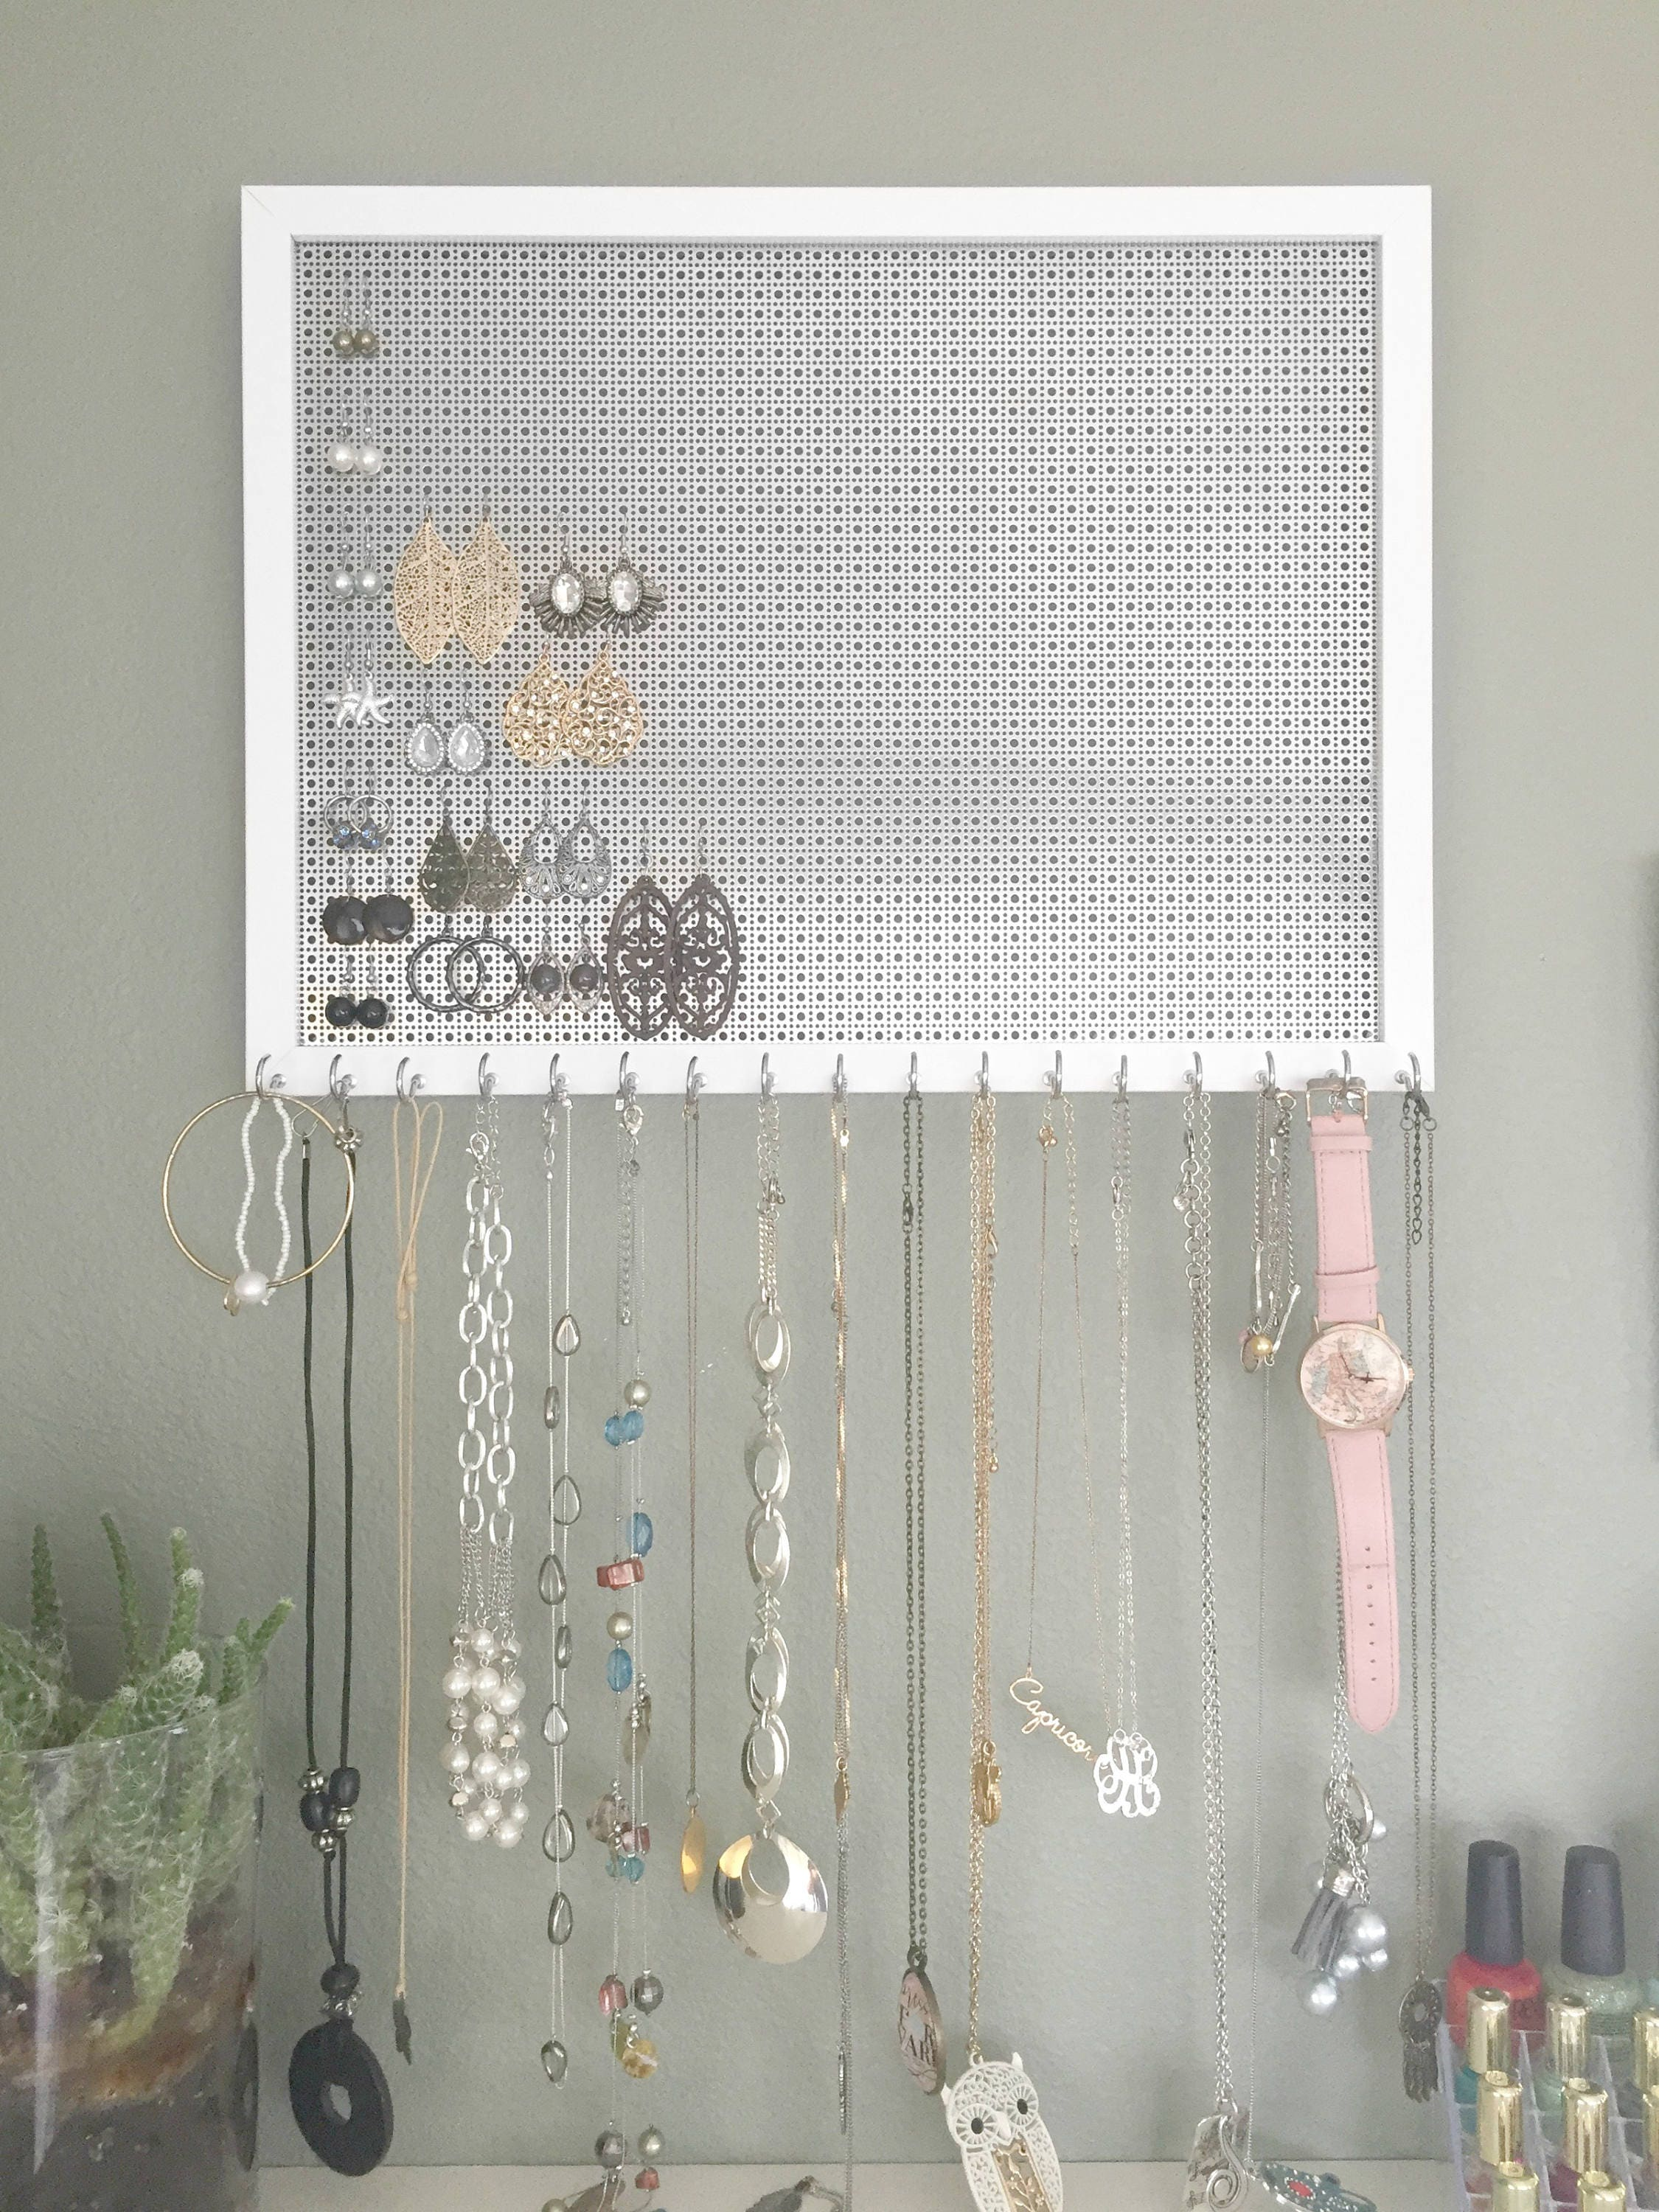 Ultimate Jewelry Organizer - 13x17 White Frame - Metal Screen for ...